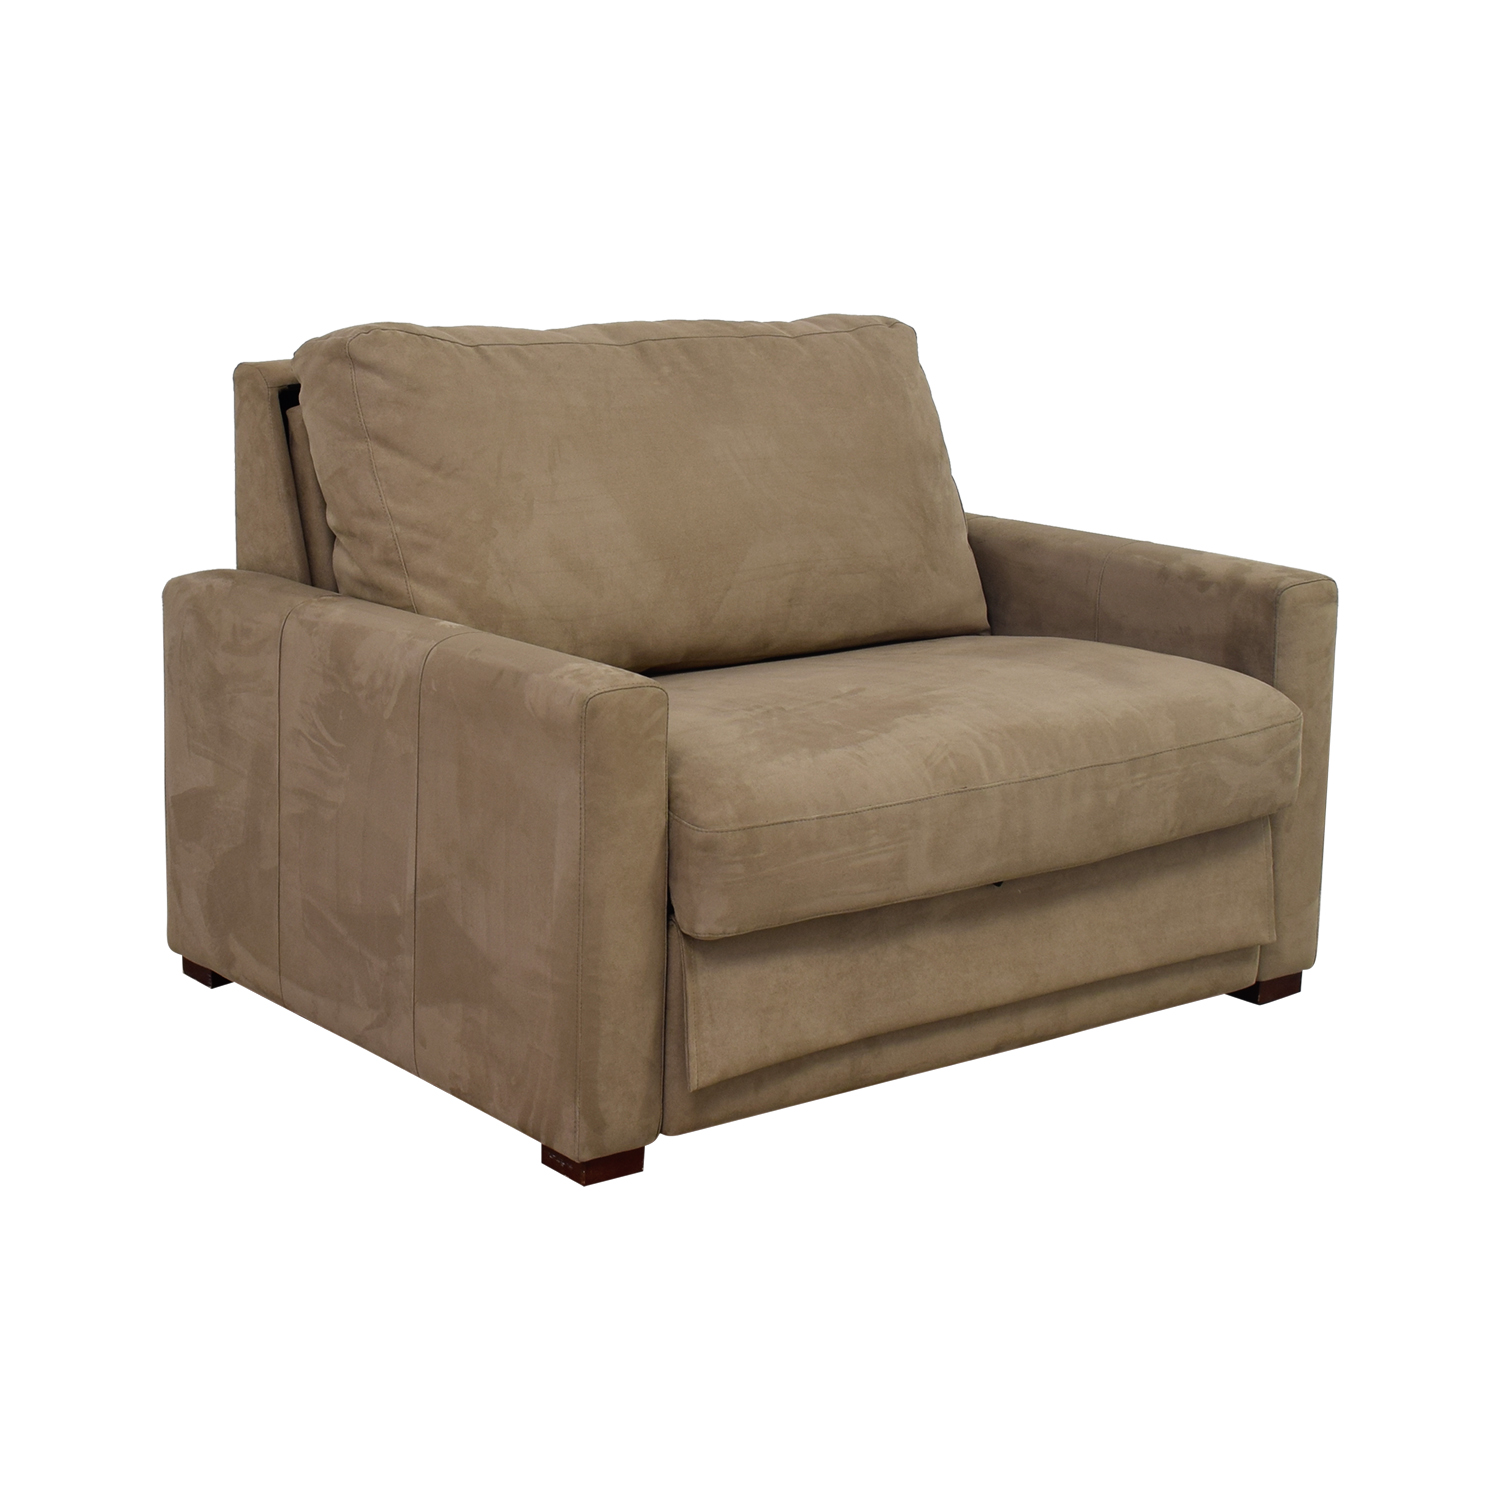 90 OFF  American Leather Comfort Sleepers Beige Accent